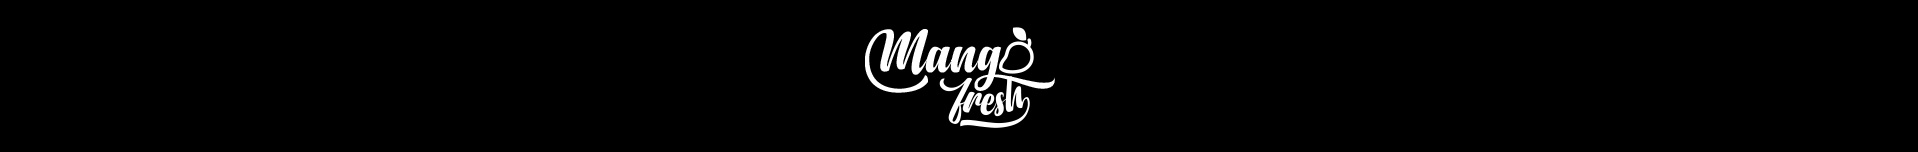 header-logo-design-graphic-mango-fresh-project-ksengo-branding-miami